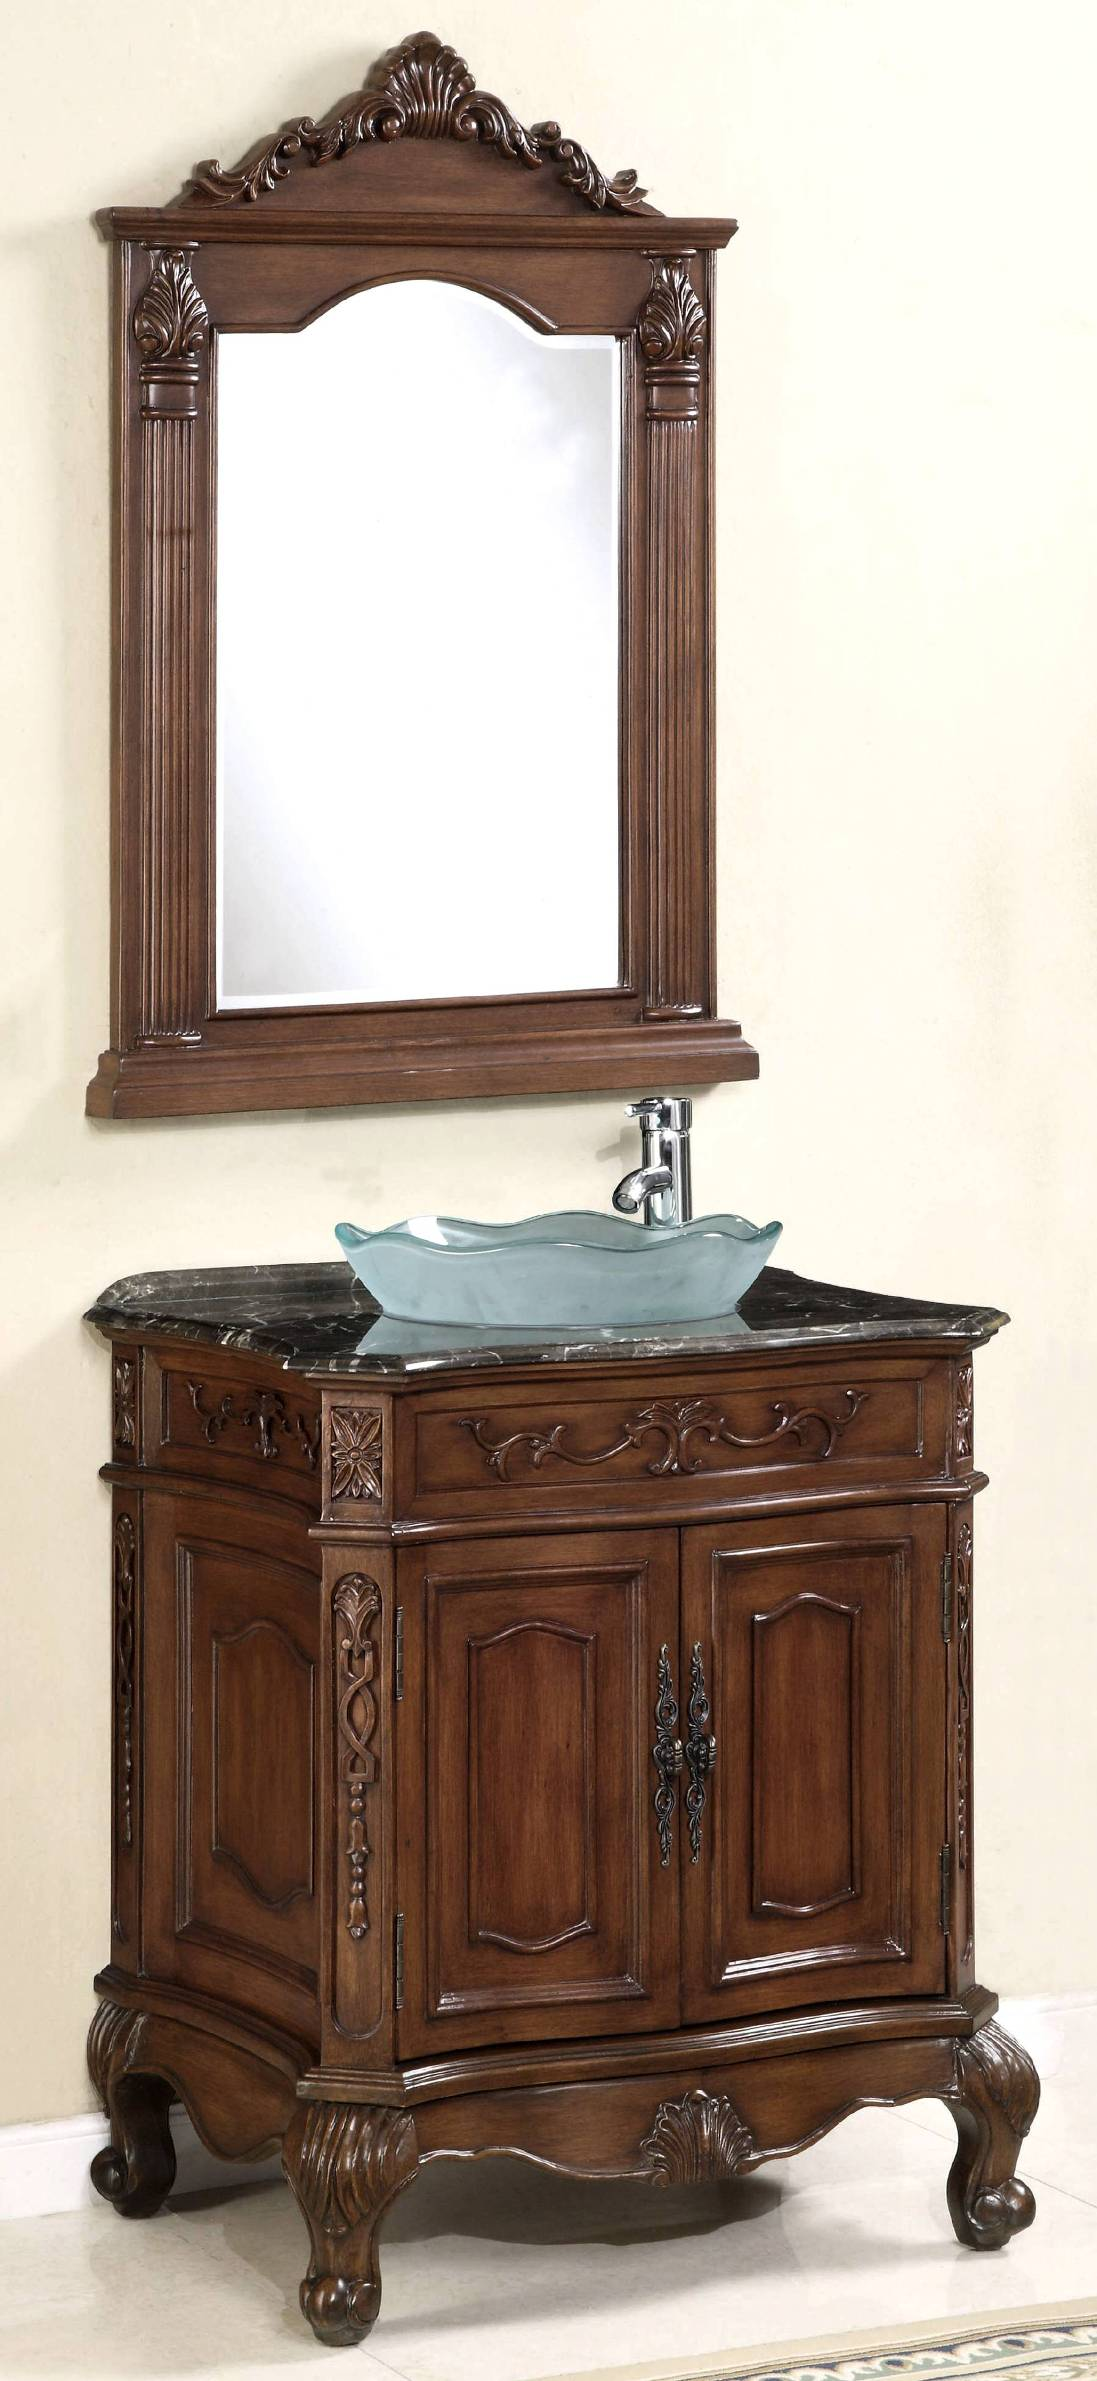 29 inch vanity set vanity with mirror vessel sink vanity